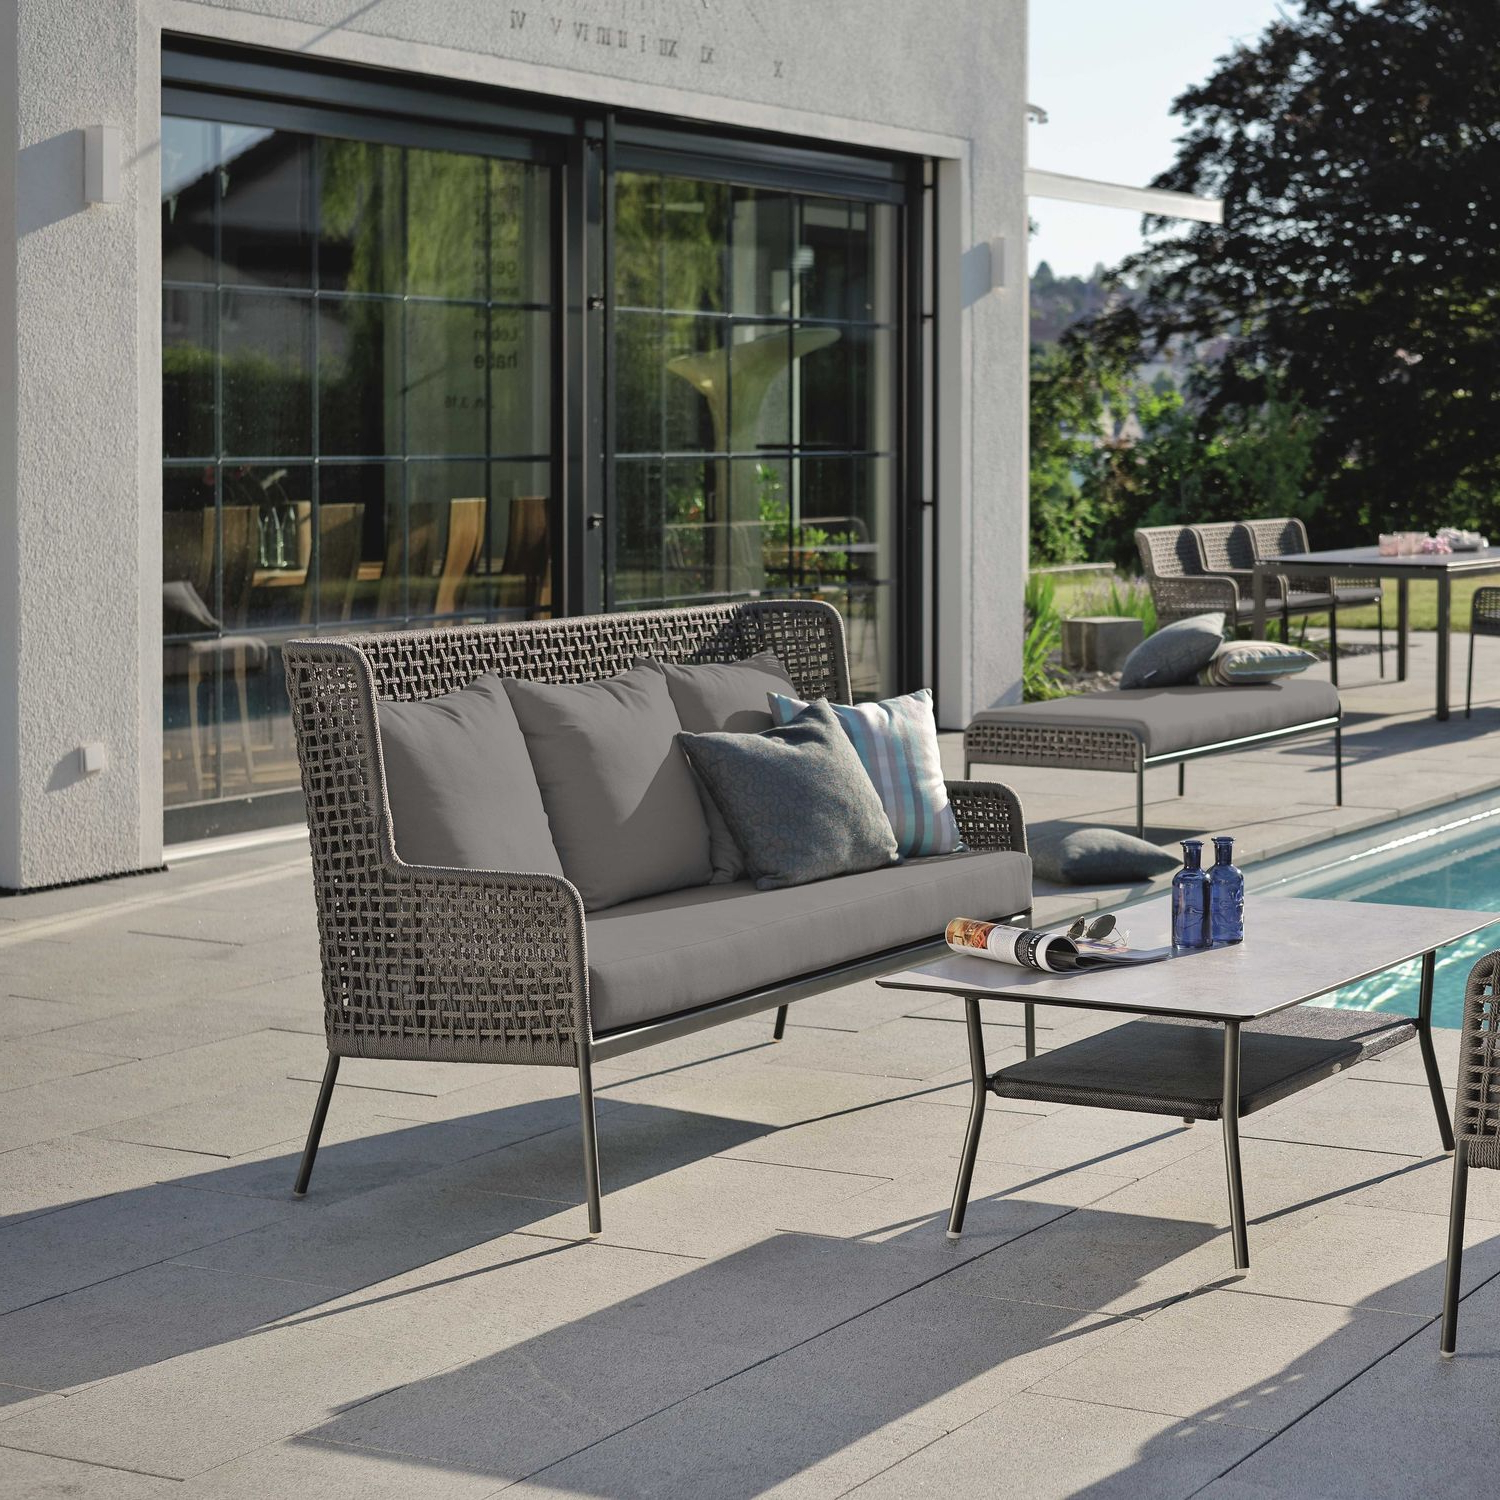 Most Recently Released Contemporary Sofa / Outdoor / Acrylic Fabric / Aluminium Inside Greta Living Patio Sectionals With Cushions (View 10 of 20)